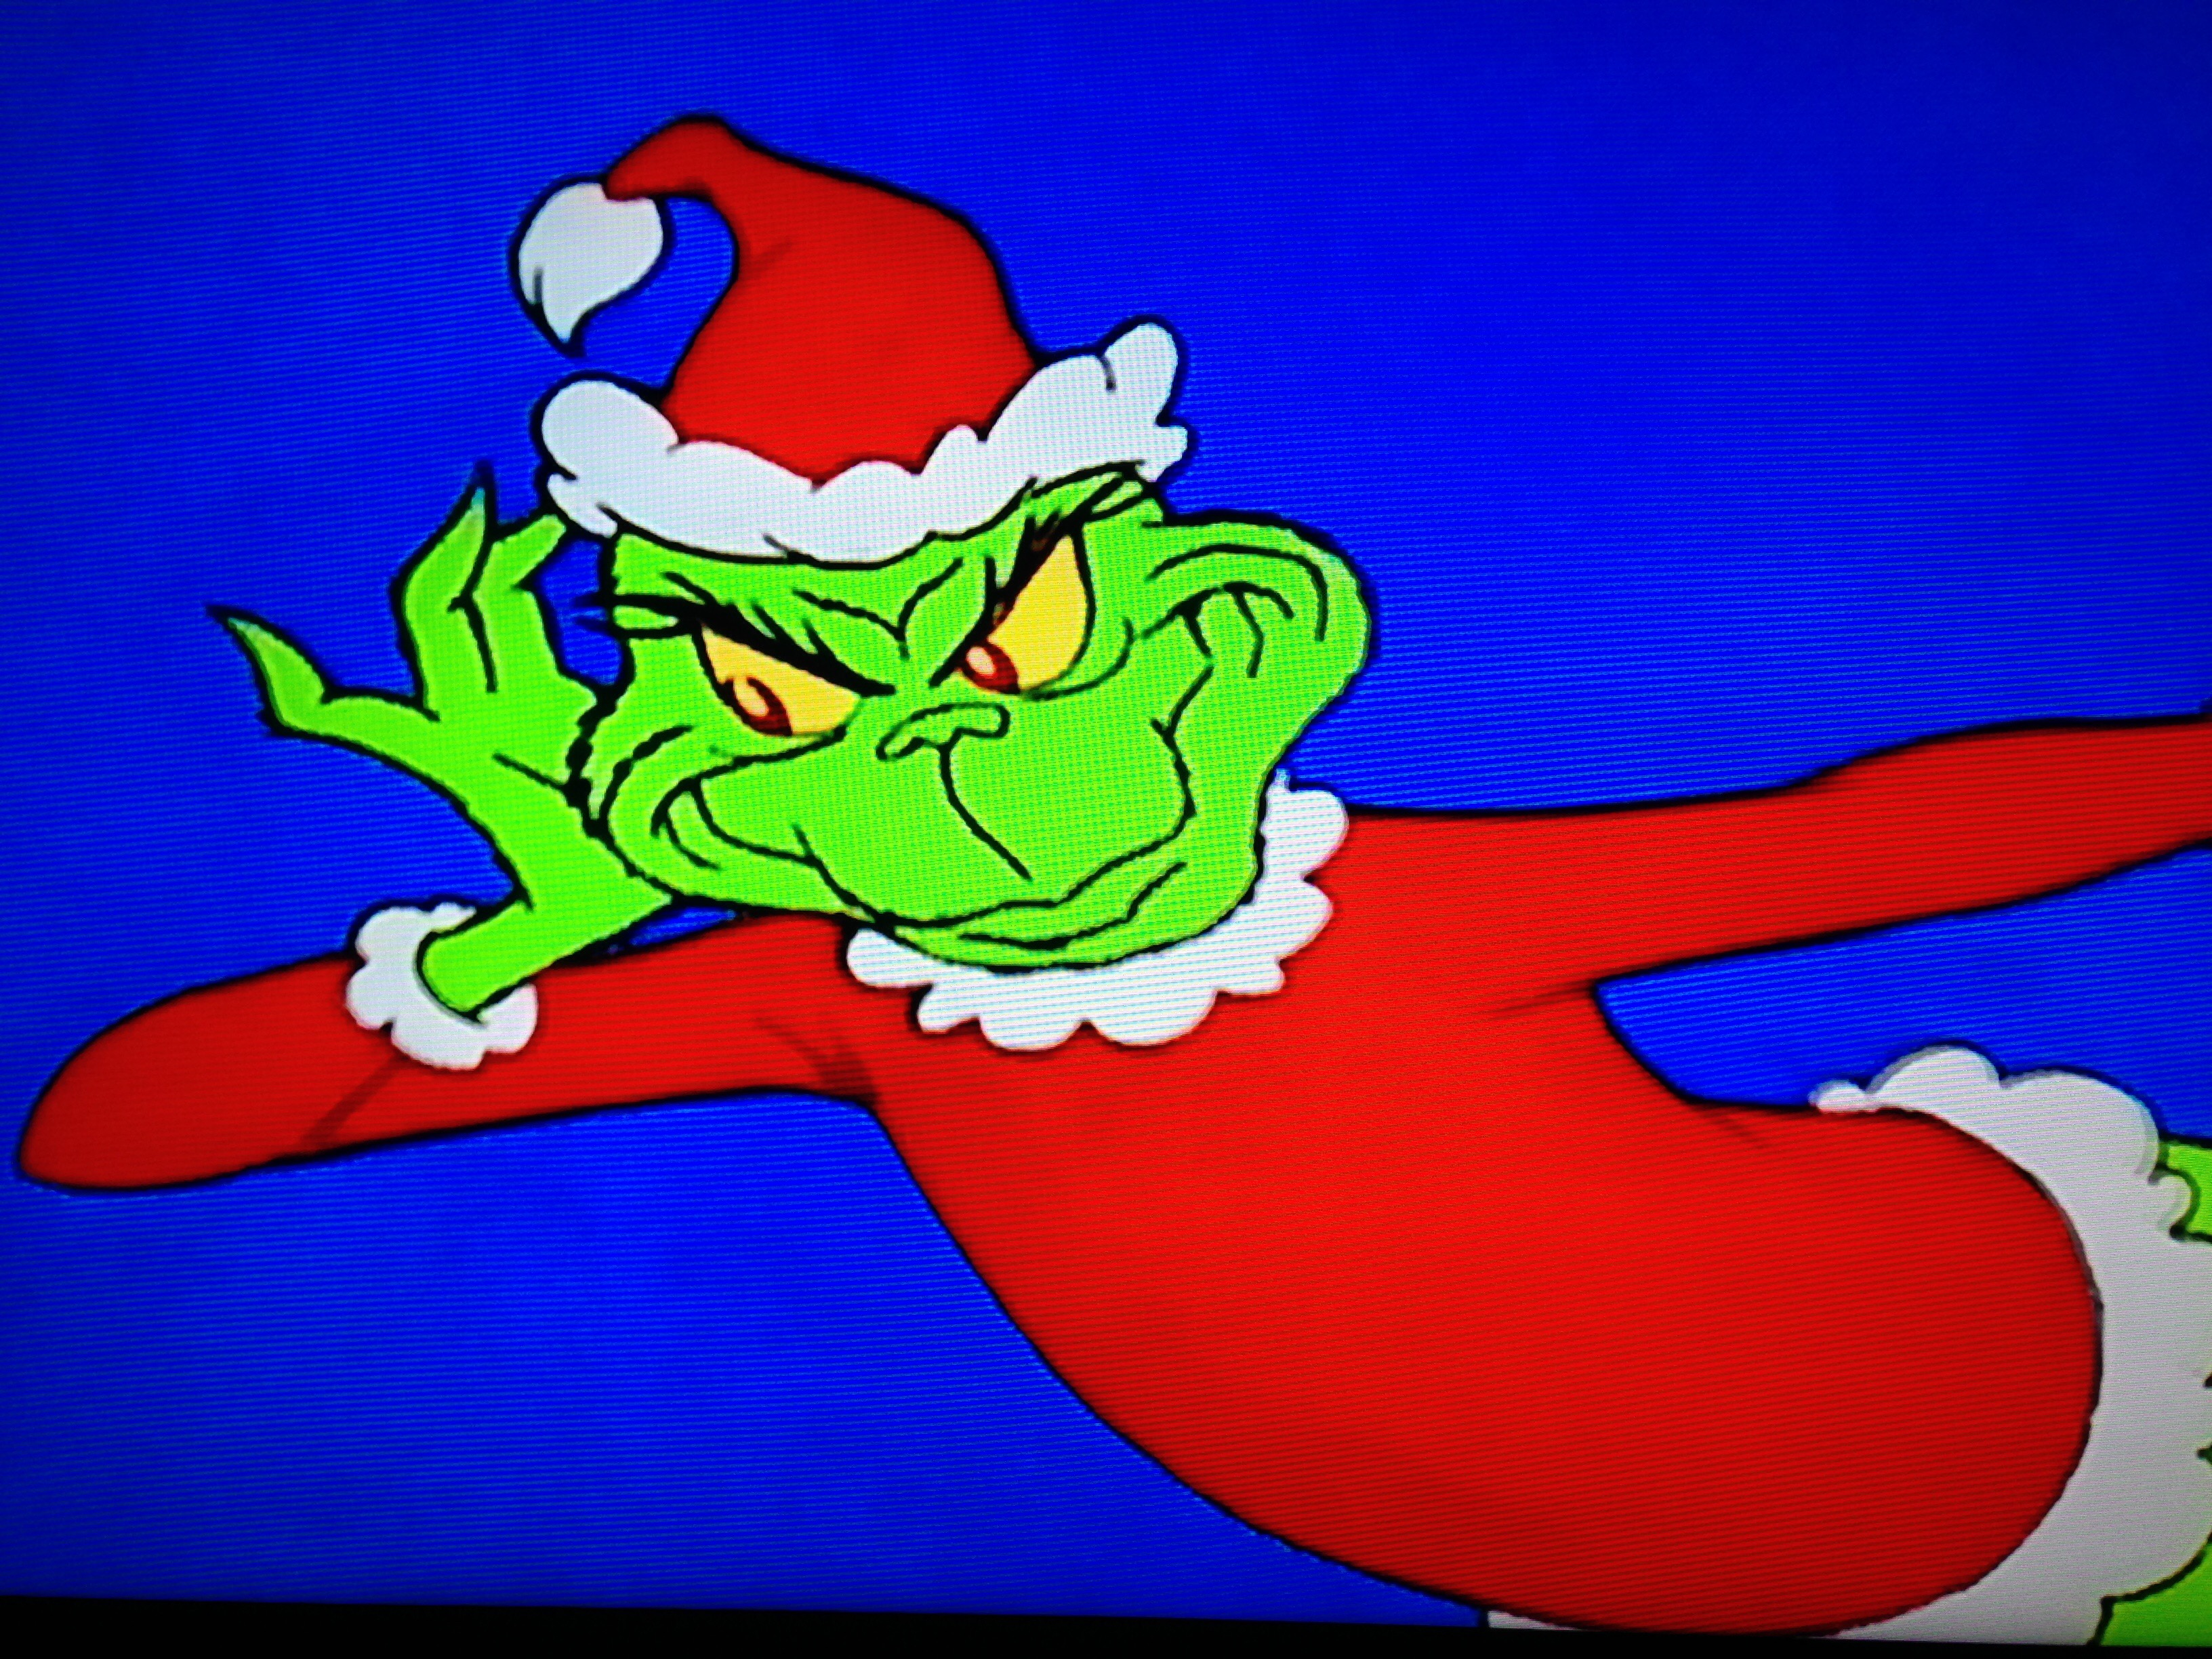 How the grinch stole christmas coloring pictures M: The Grinch's Great Big Flap Book